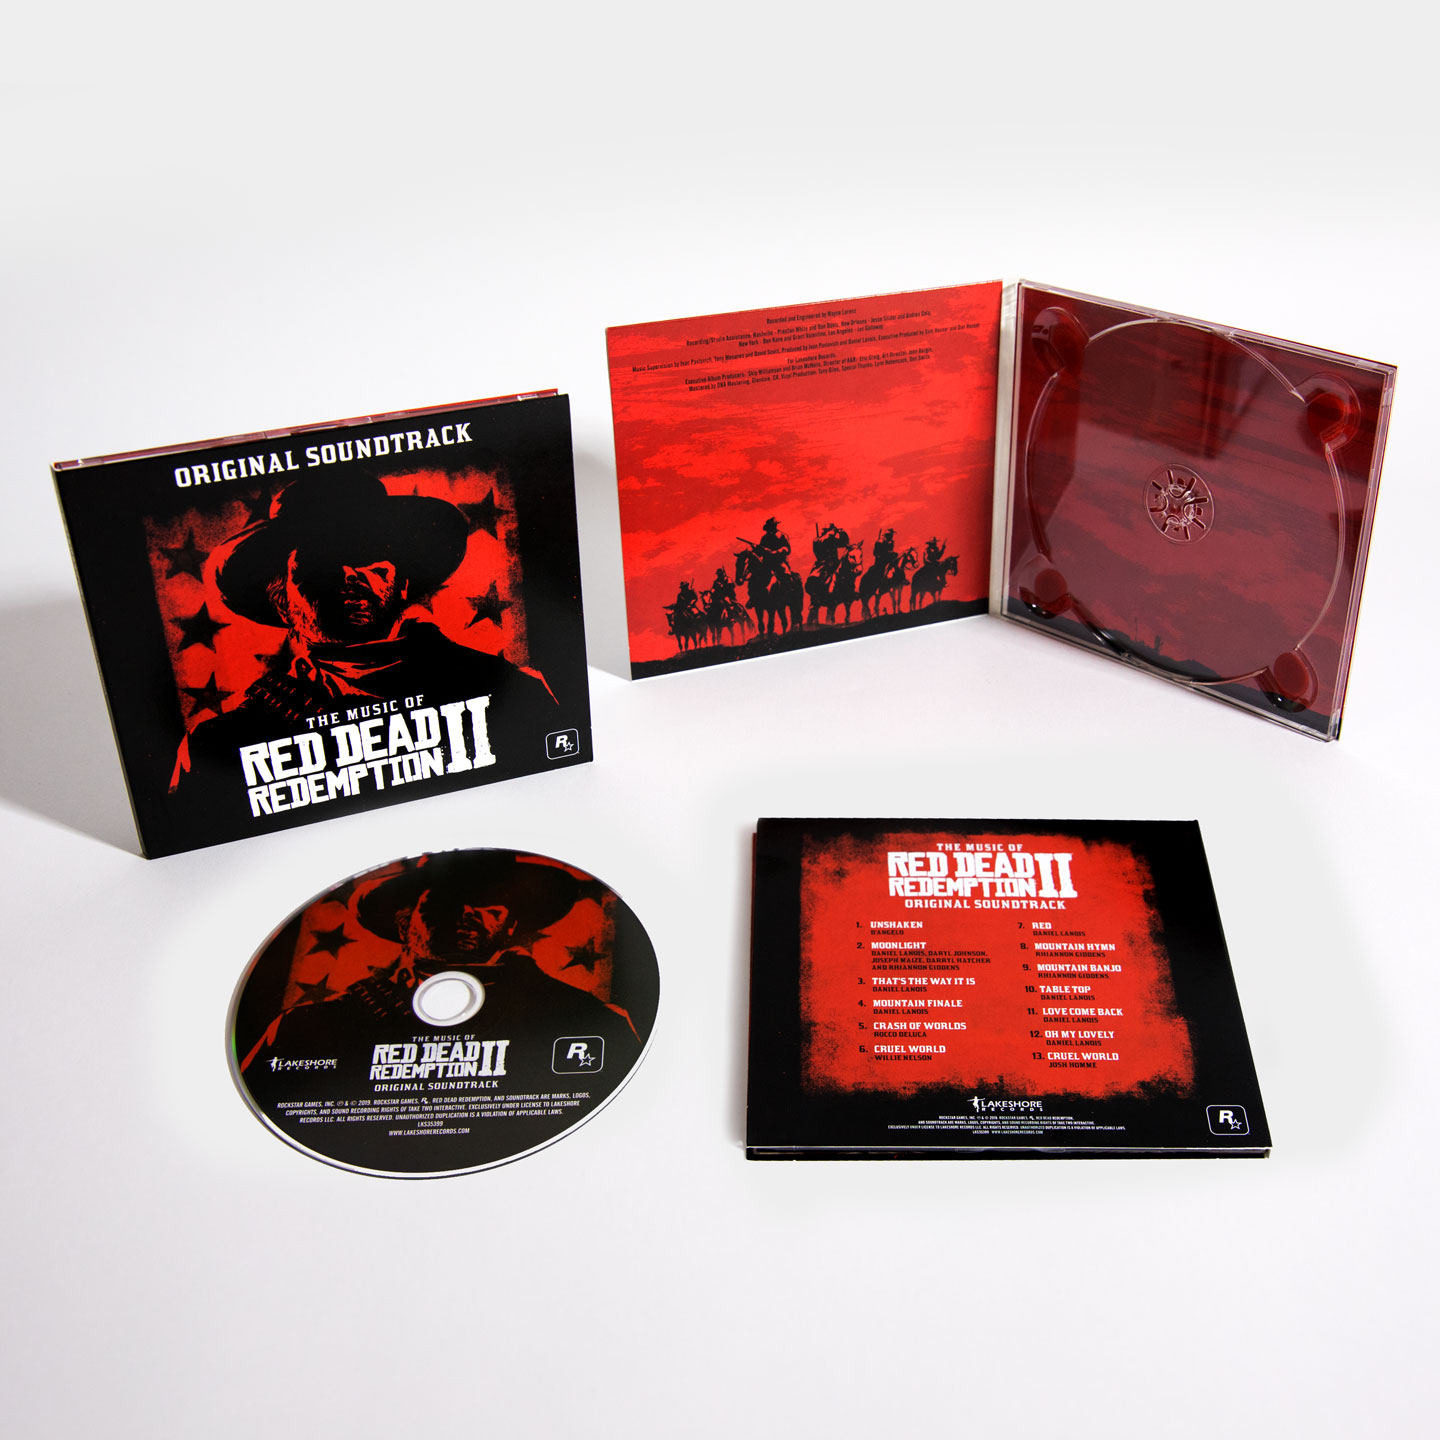 The Music of Red Dead Redemption 2: Original Soundtrack CD